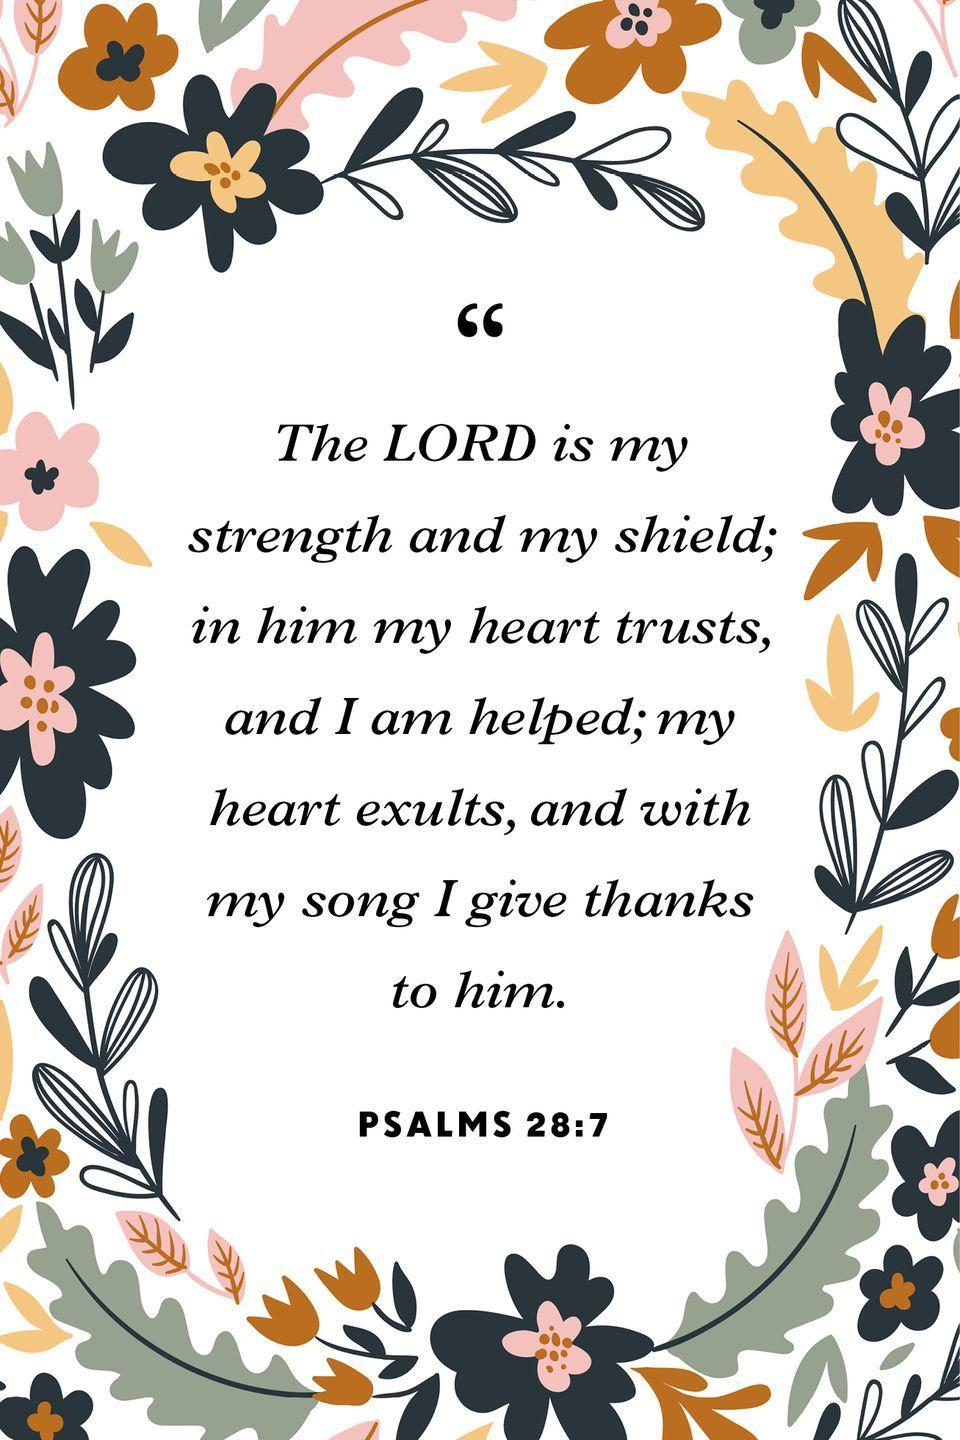 """<p>""""The LORD is my strength and my shield;<br>in him my heart trusts, and I am helped;<br>my heart exults, and with my song I give thanks to him.""""</p>"""